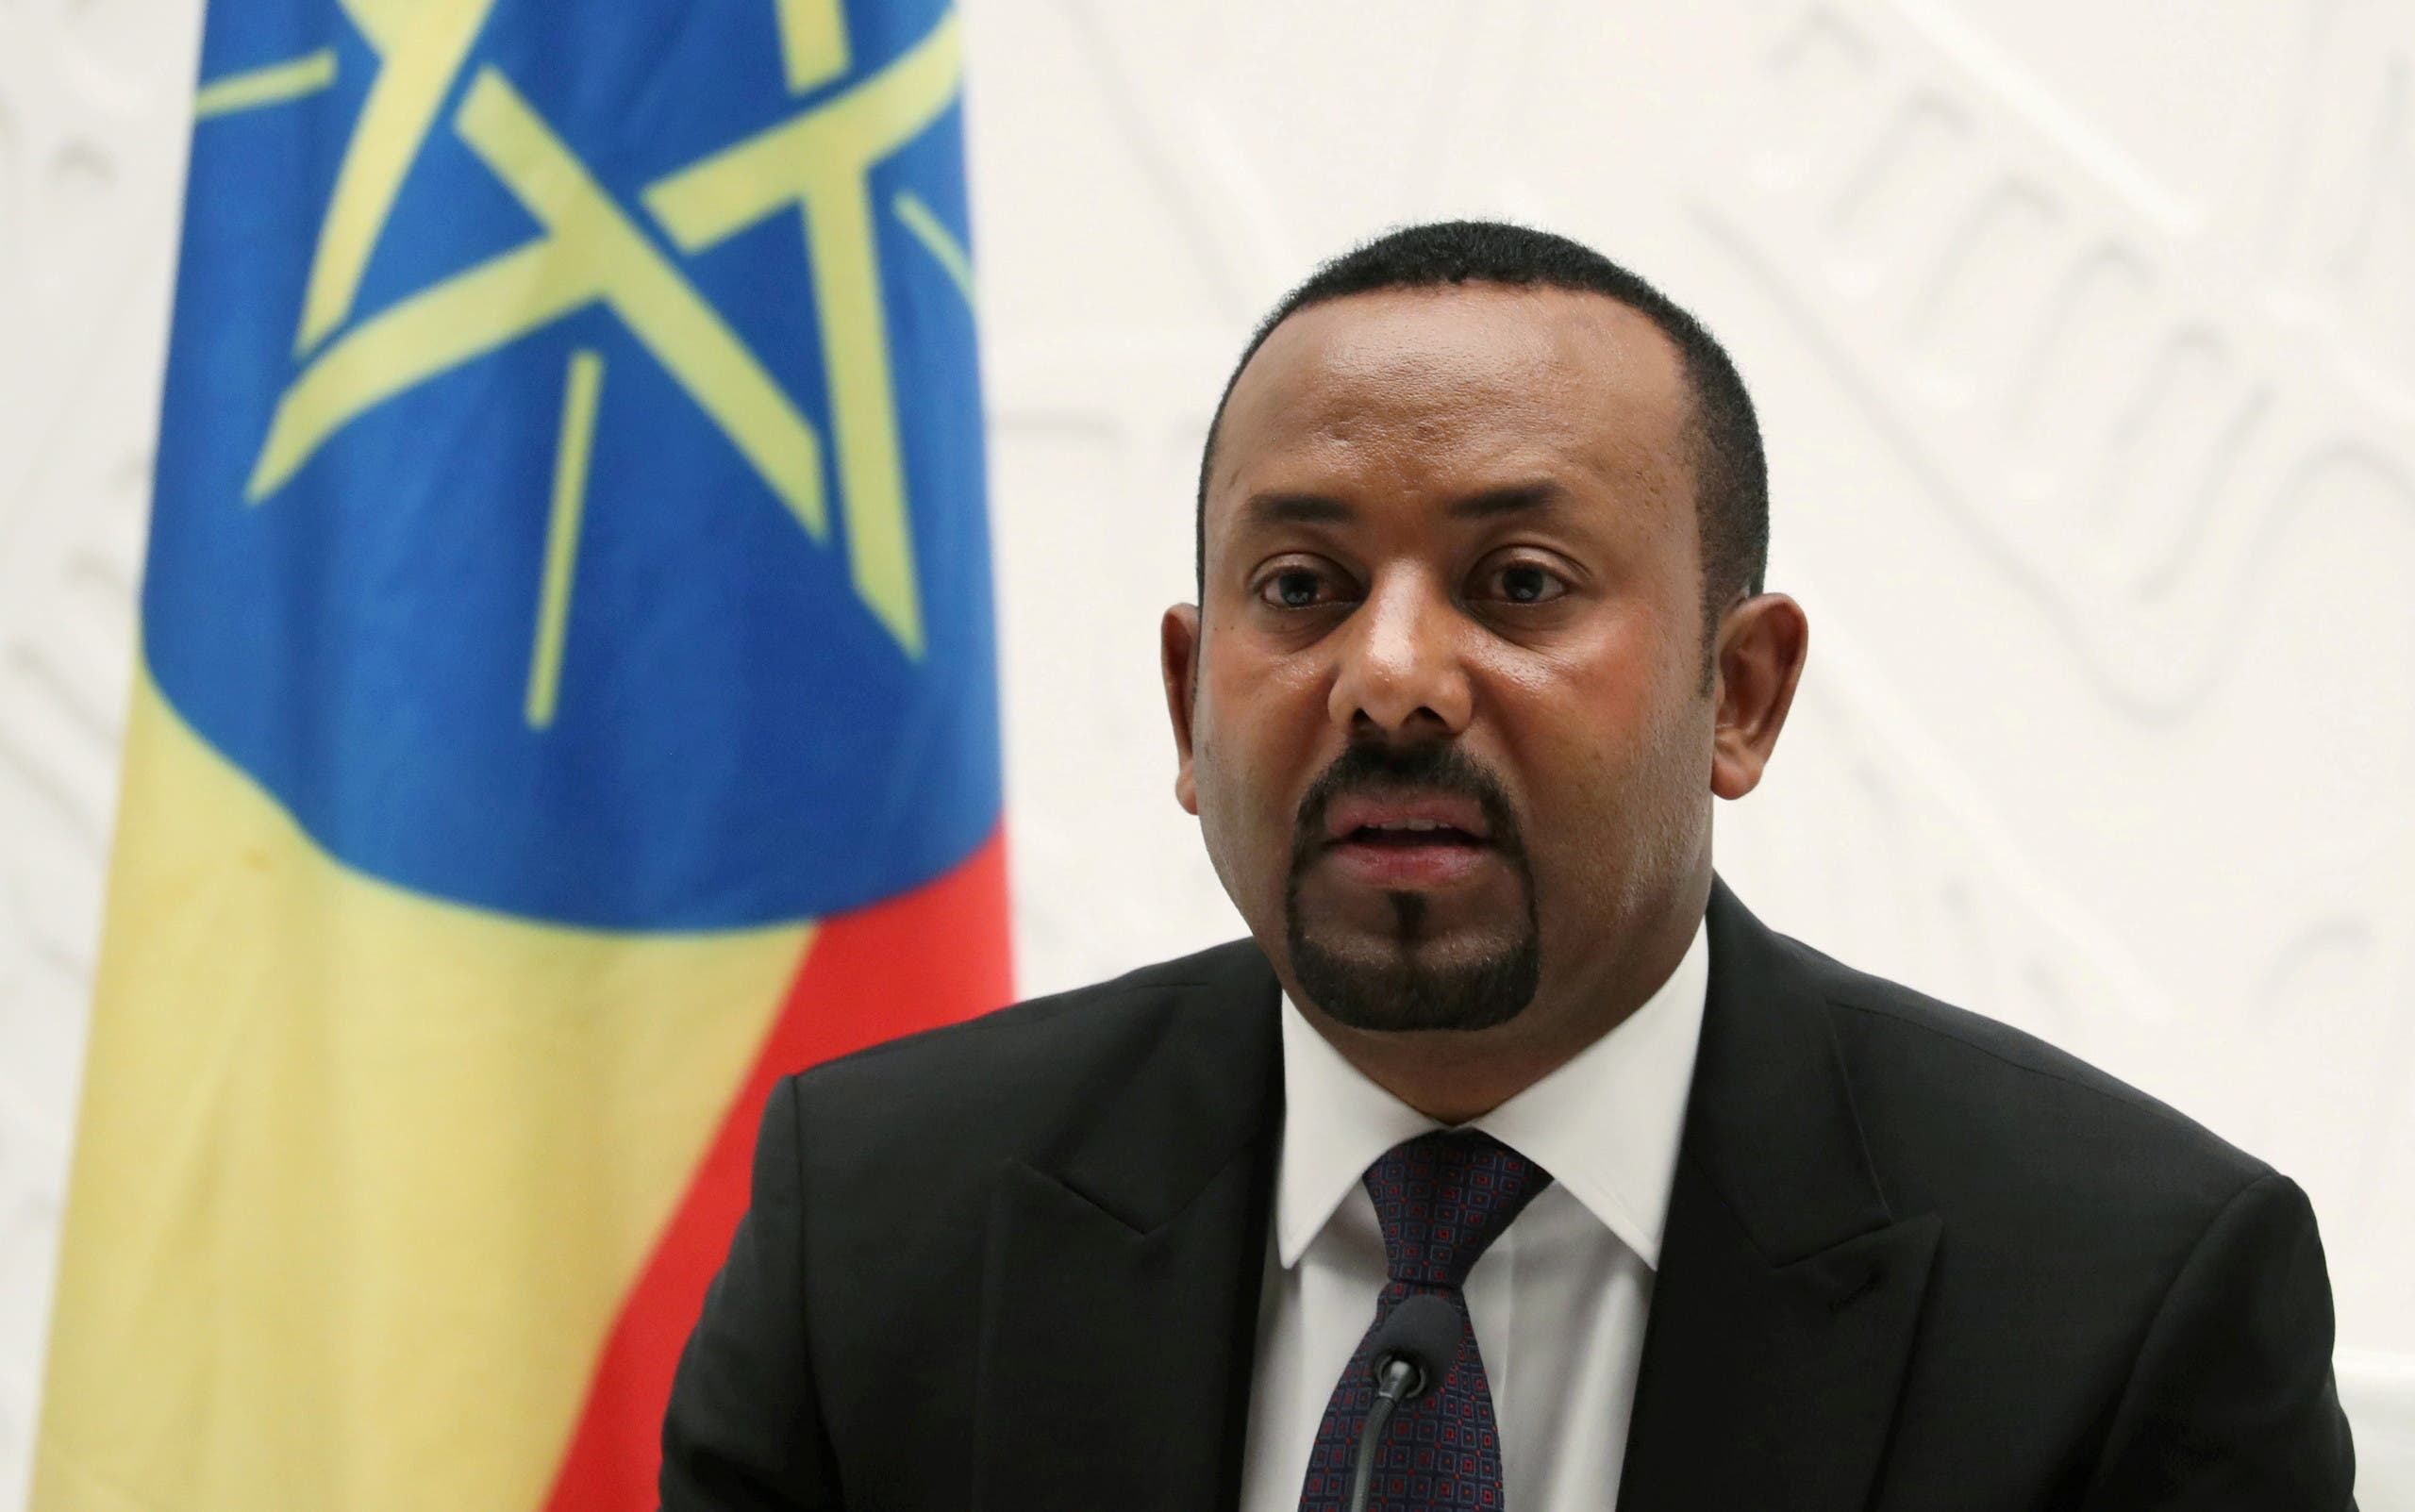 Ethiopia's Prime Minister Abiy Ahmed speaks at a news conference at his office in Addis Ababa, Ethiopia. (File Photo: Reuters)